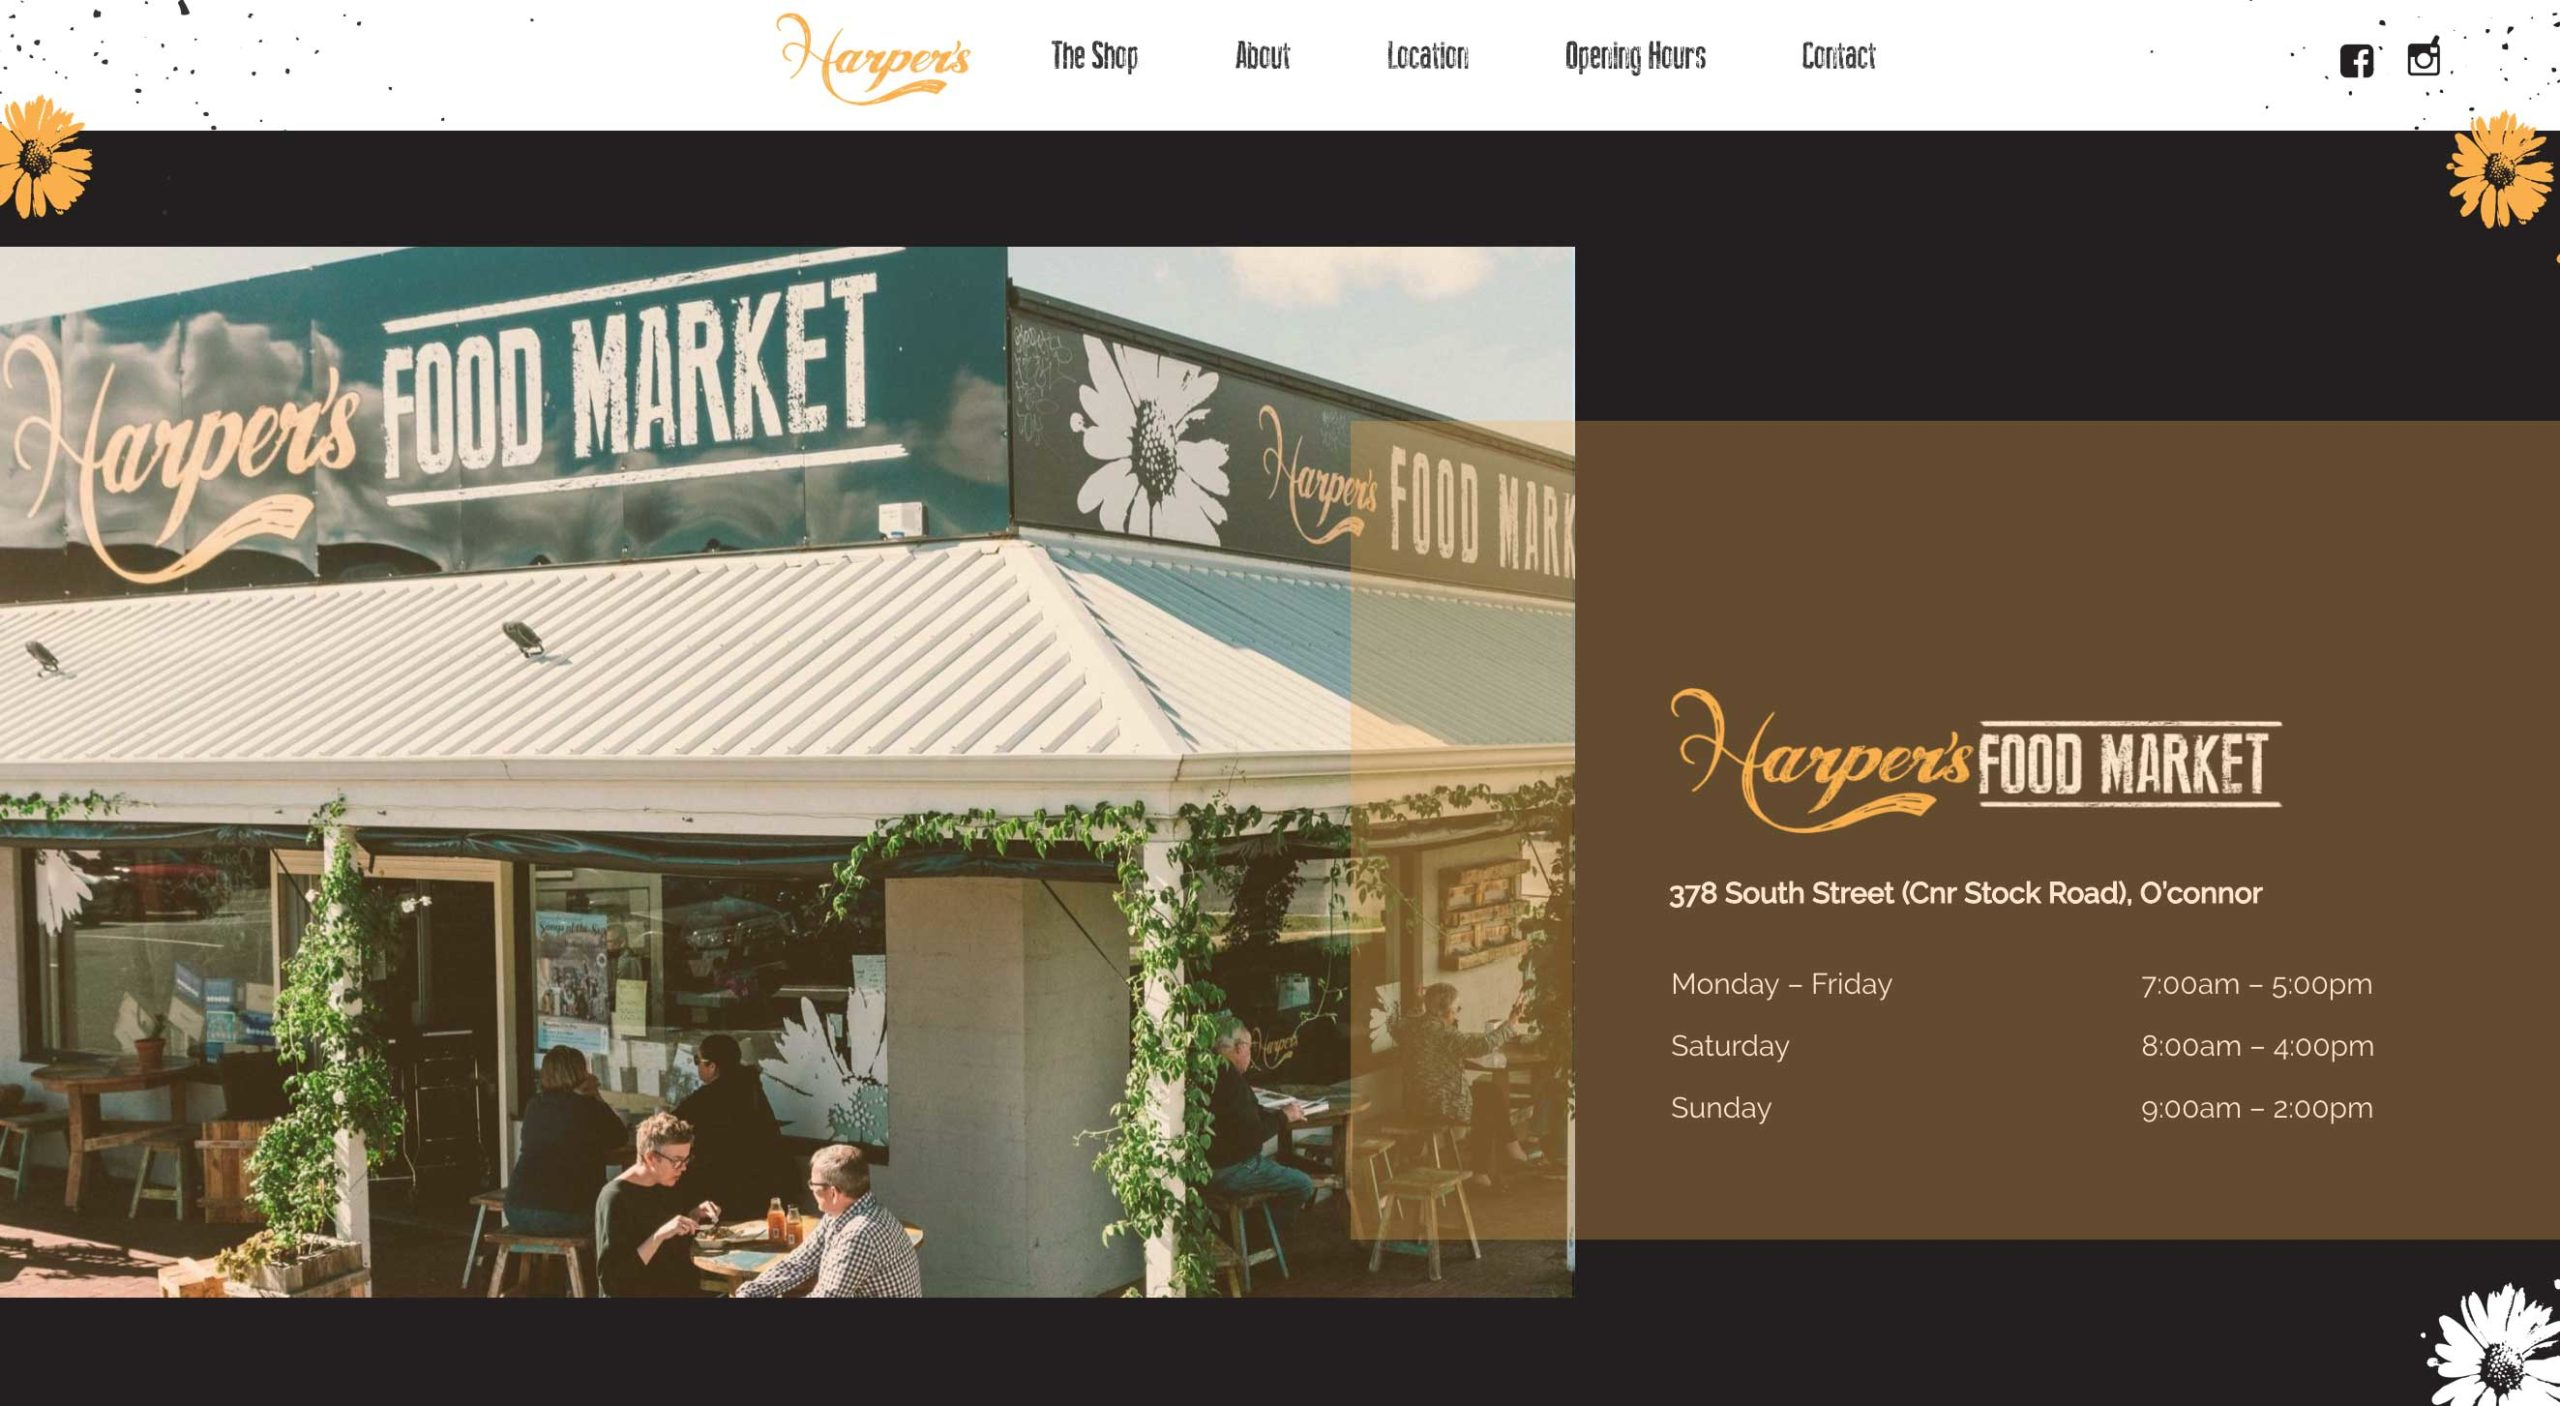 Harpers-Food-Market-(3)-web